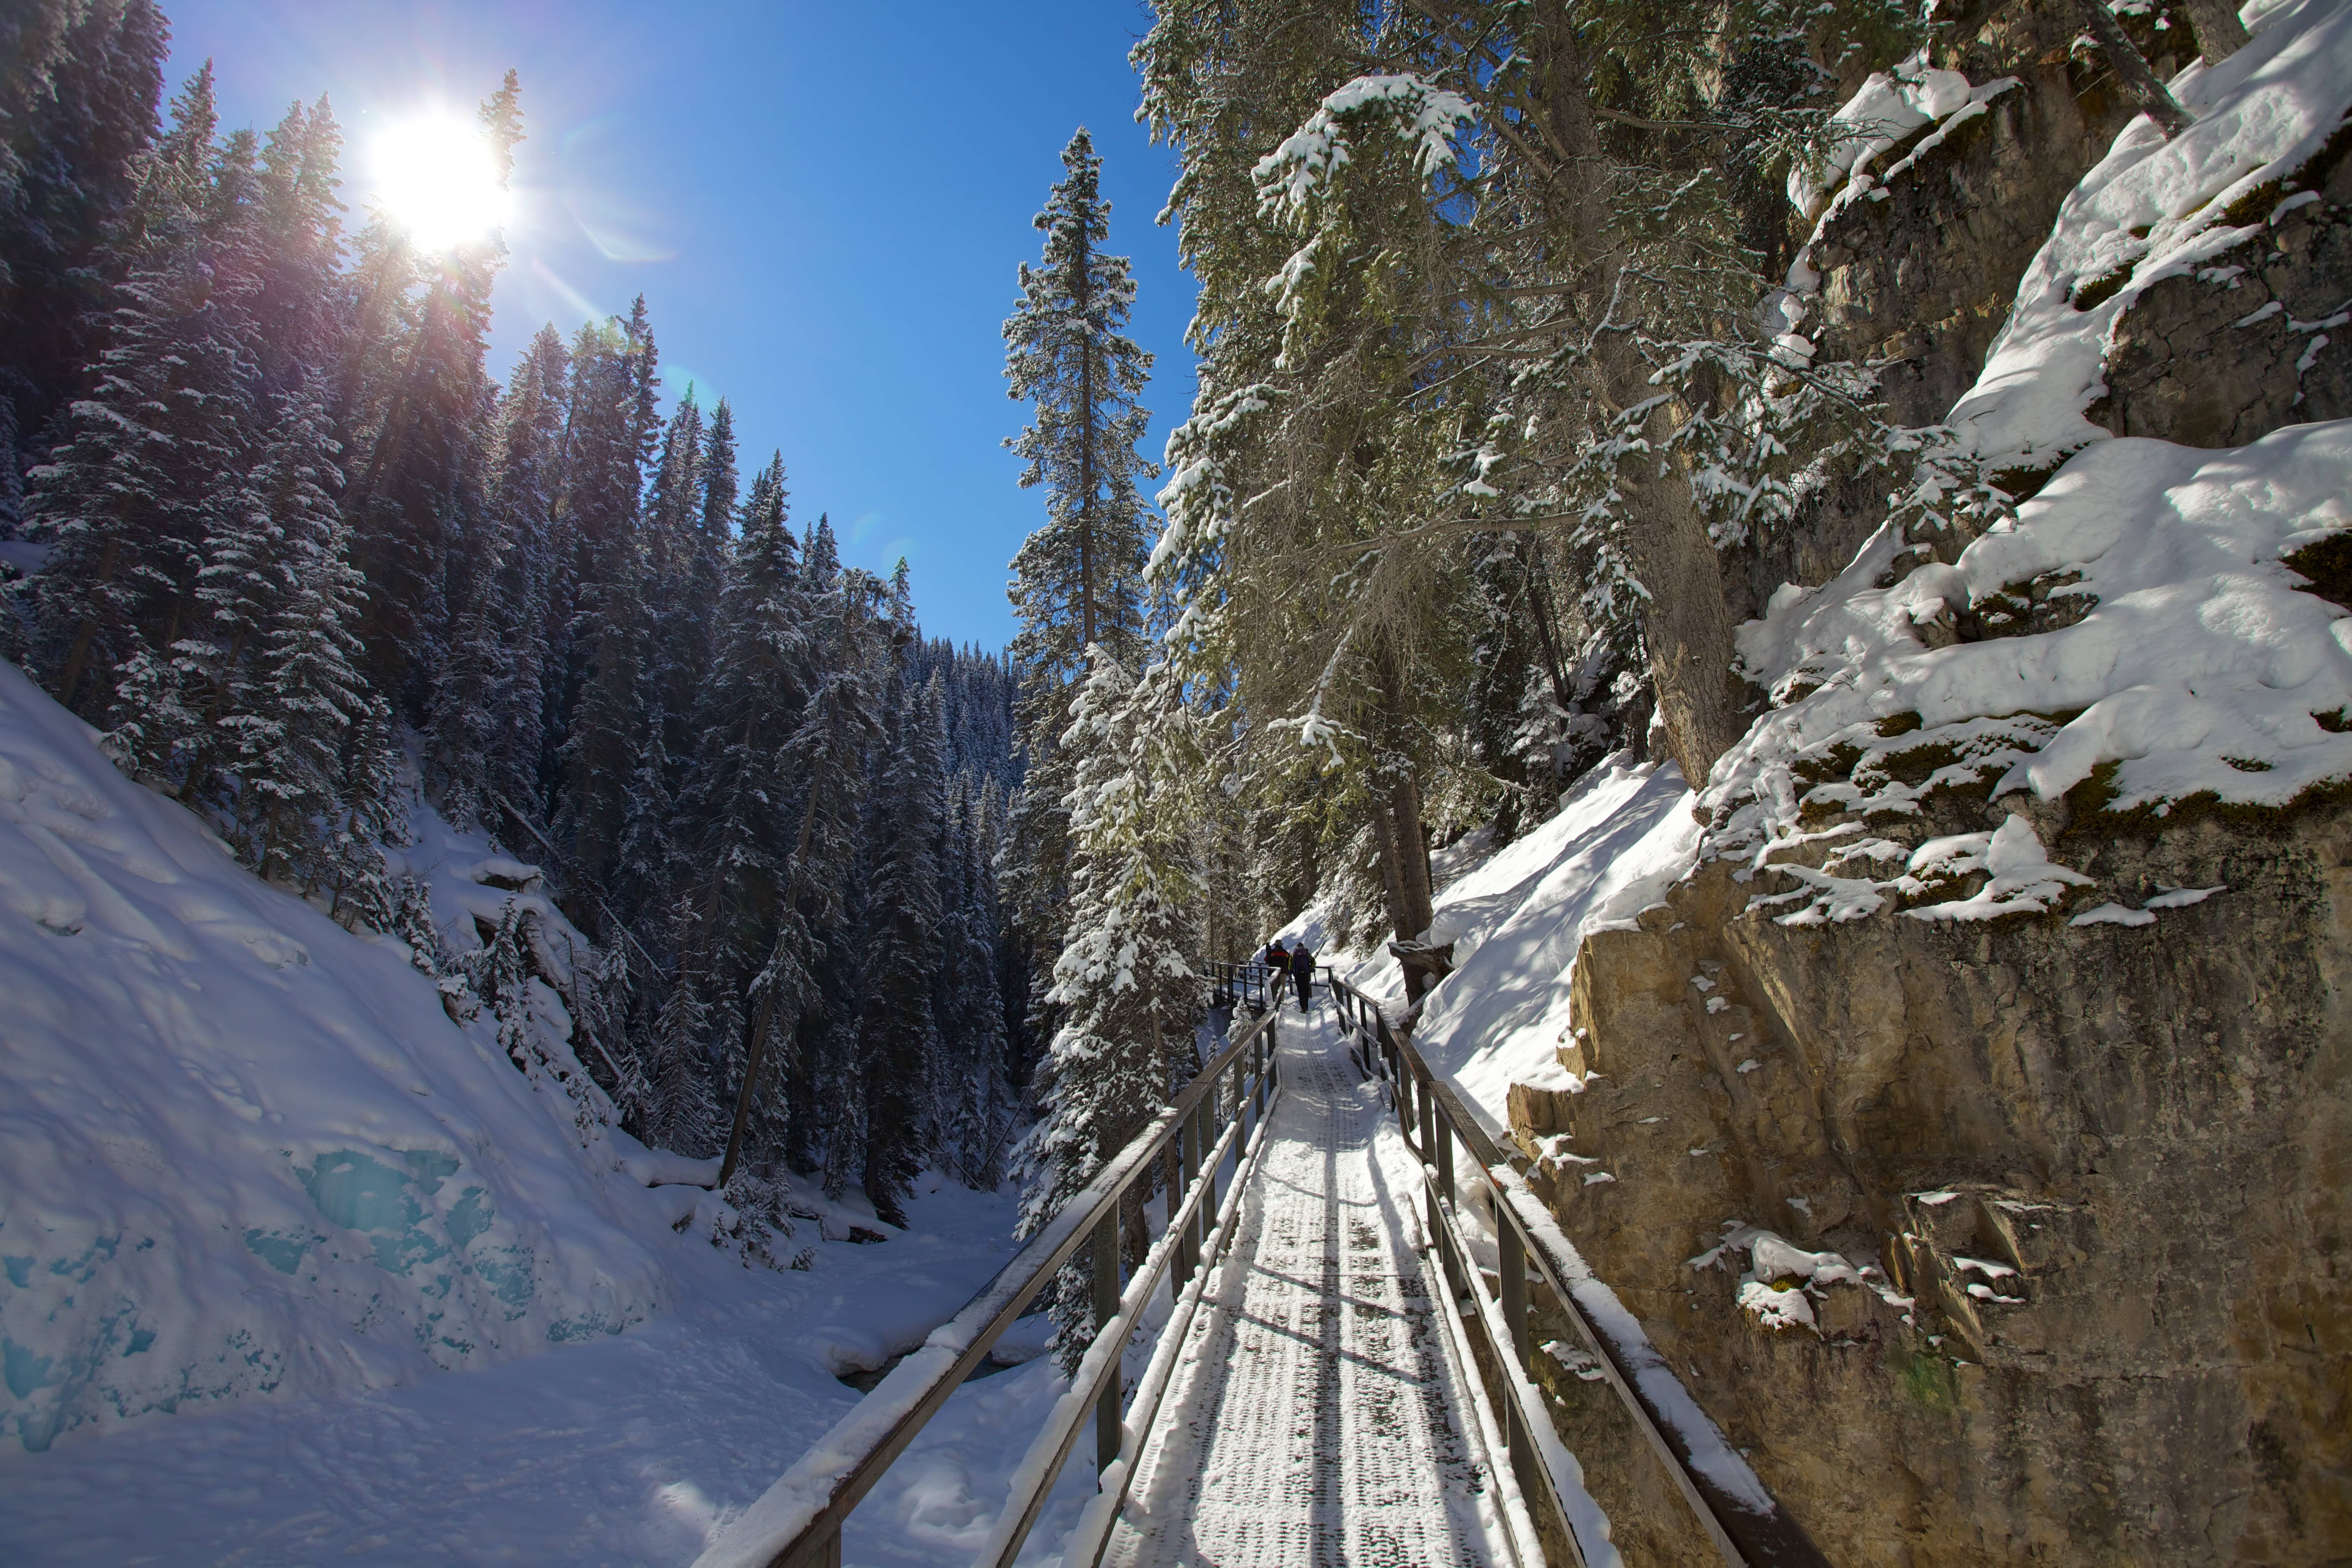 View of Johnston Canyon covered in snow